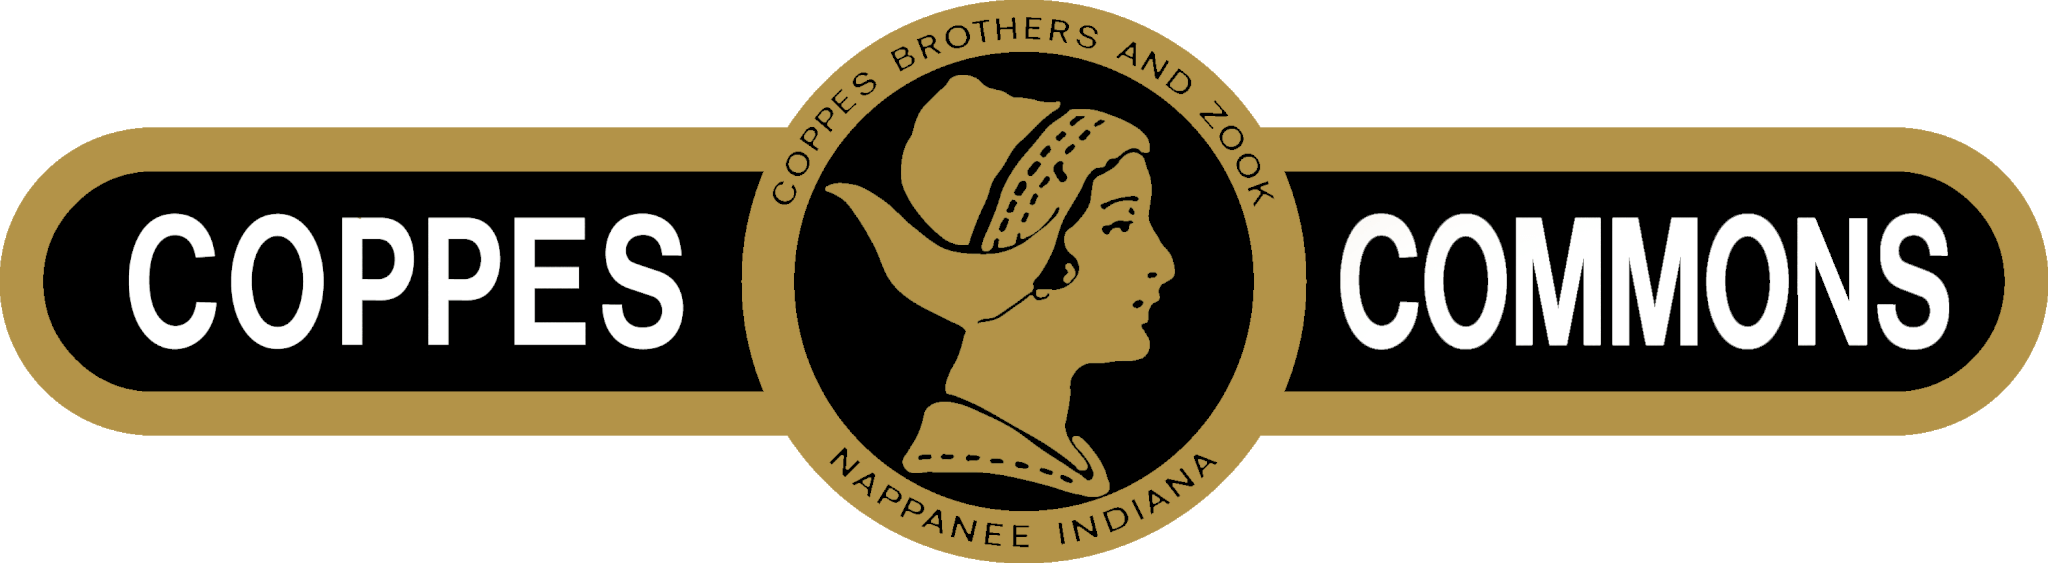 coppes-commons-logo